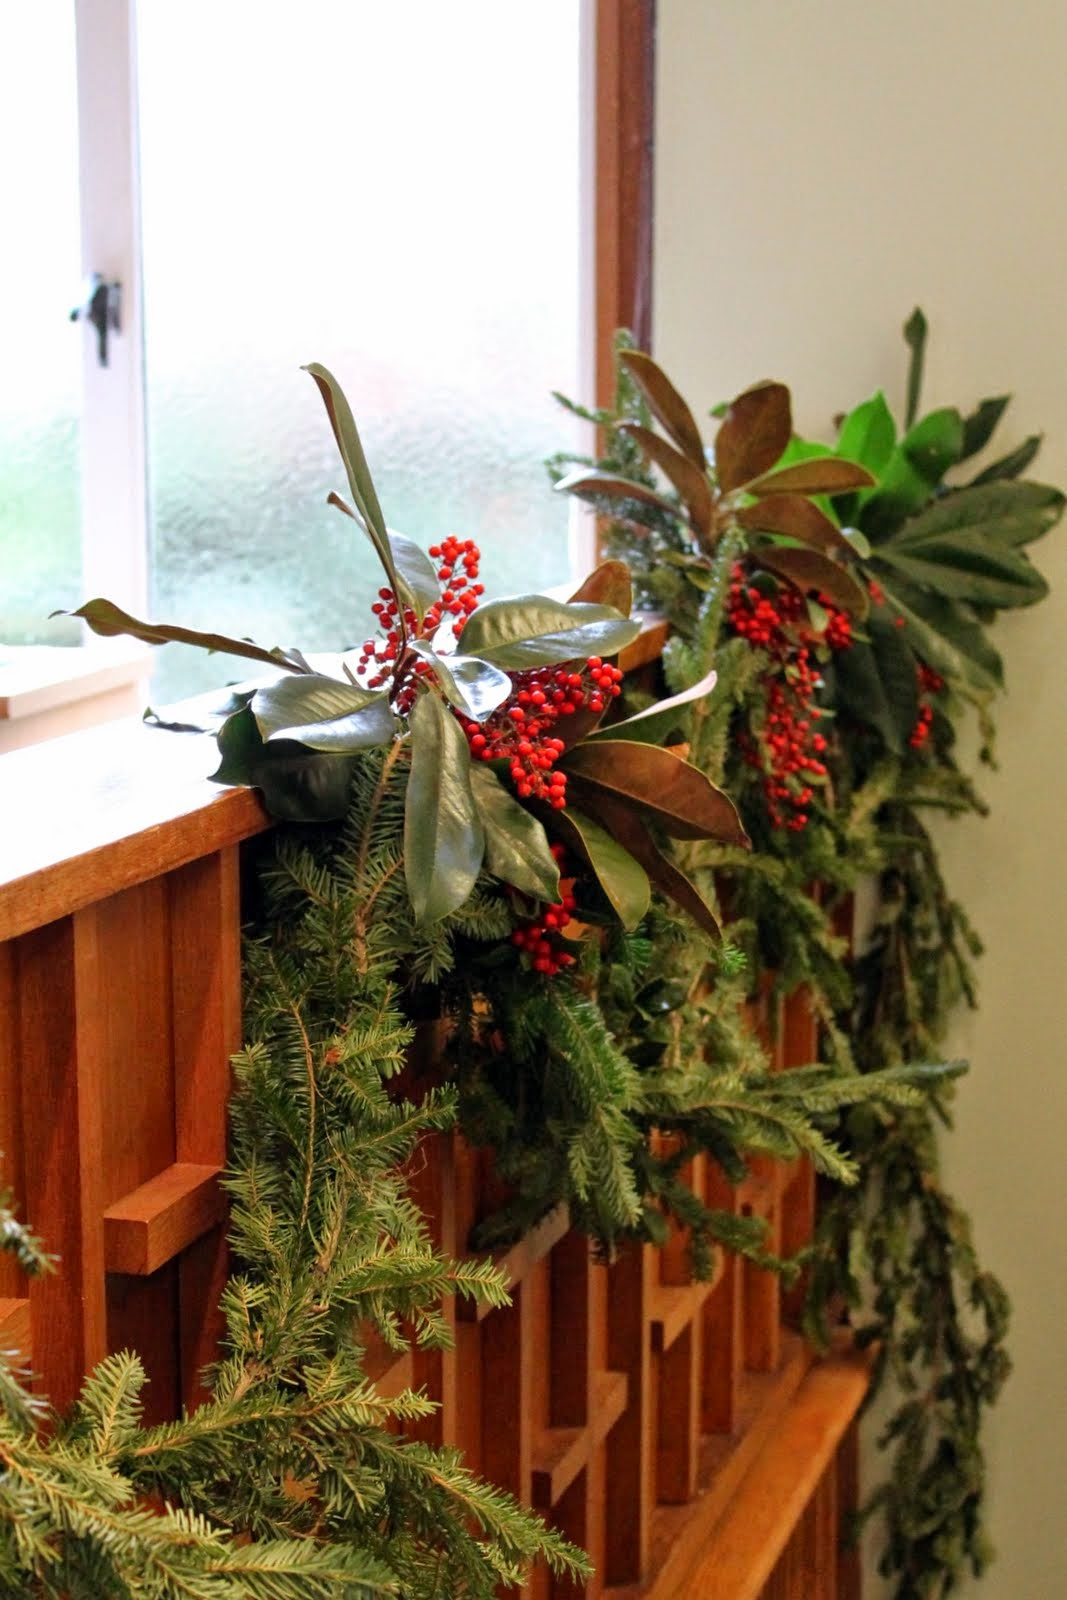 Garland of greens decorates the sanctuary